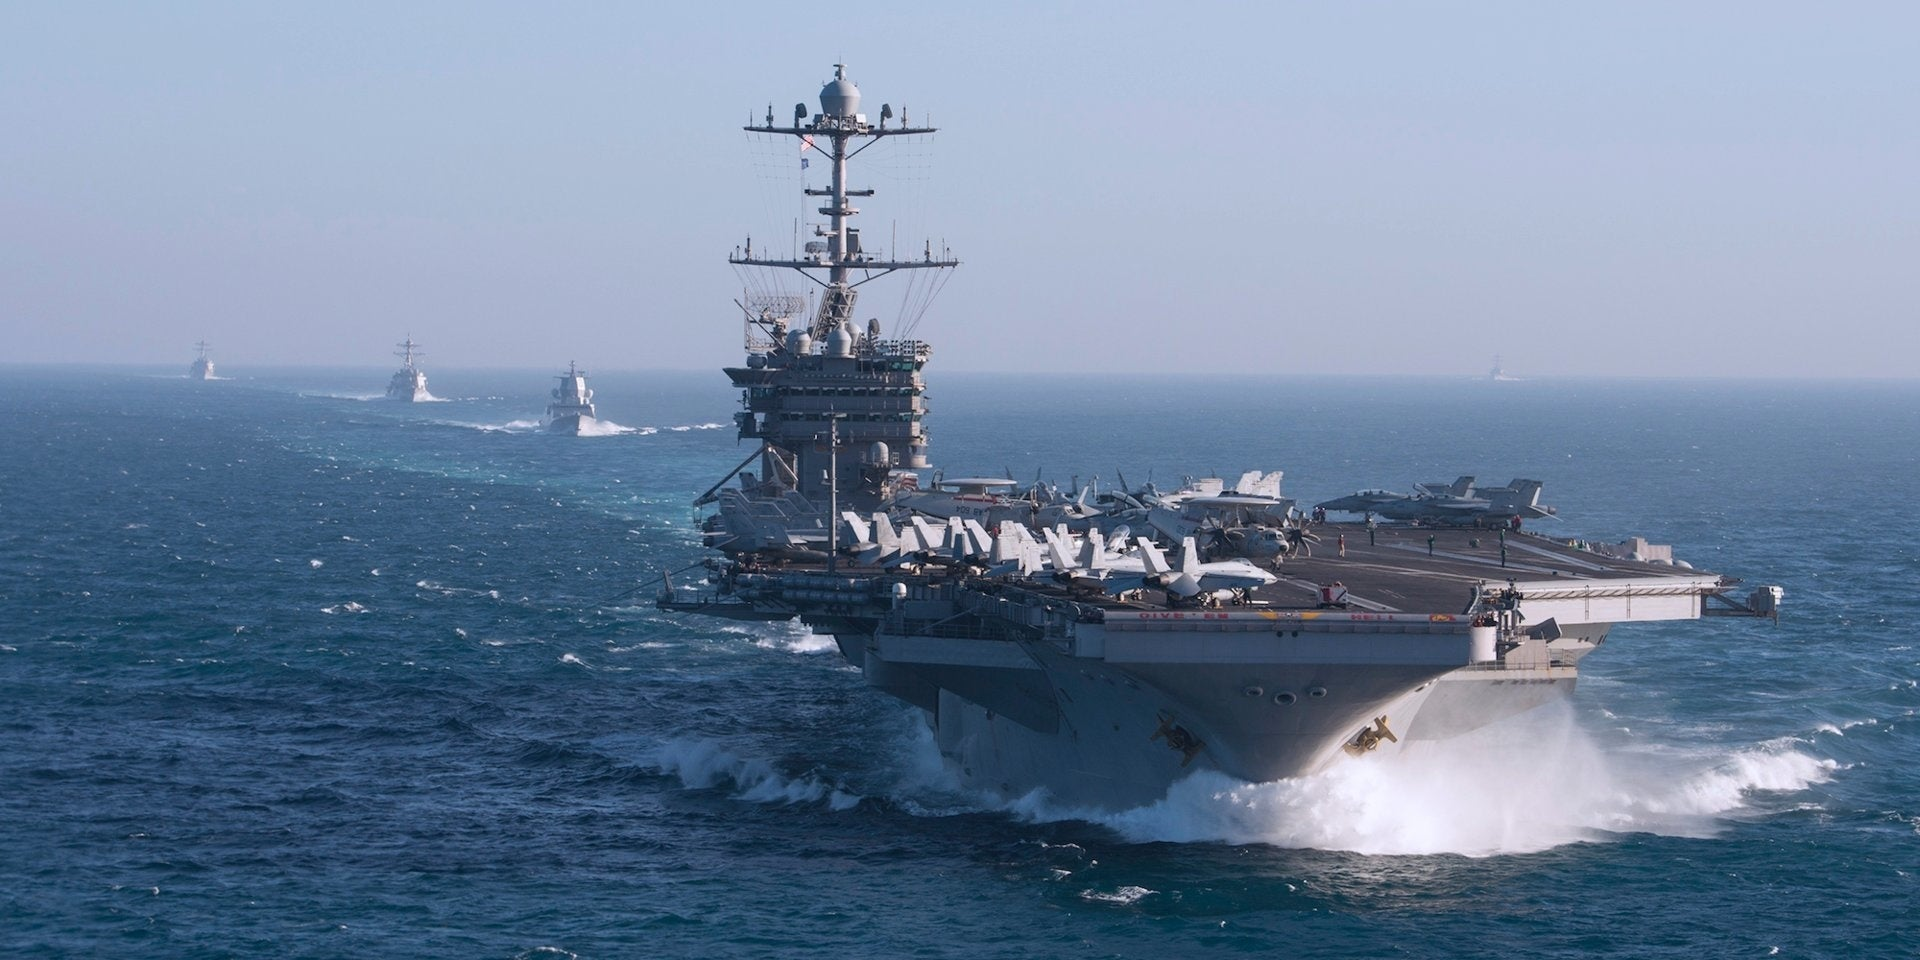 The Pentagon will reportedly retire an aircraft carrier 2 decades early to save money